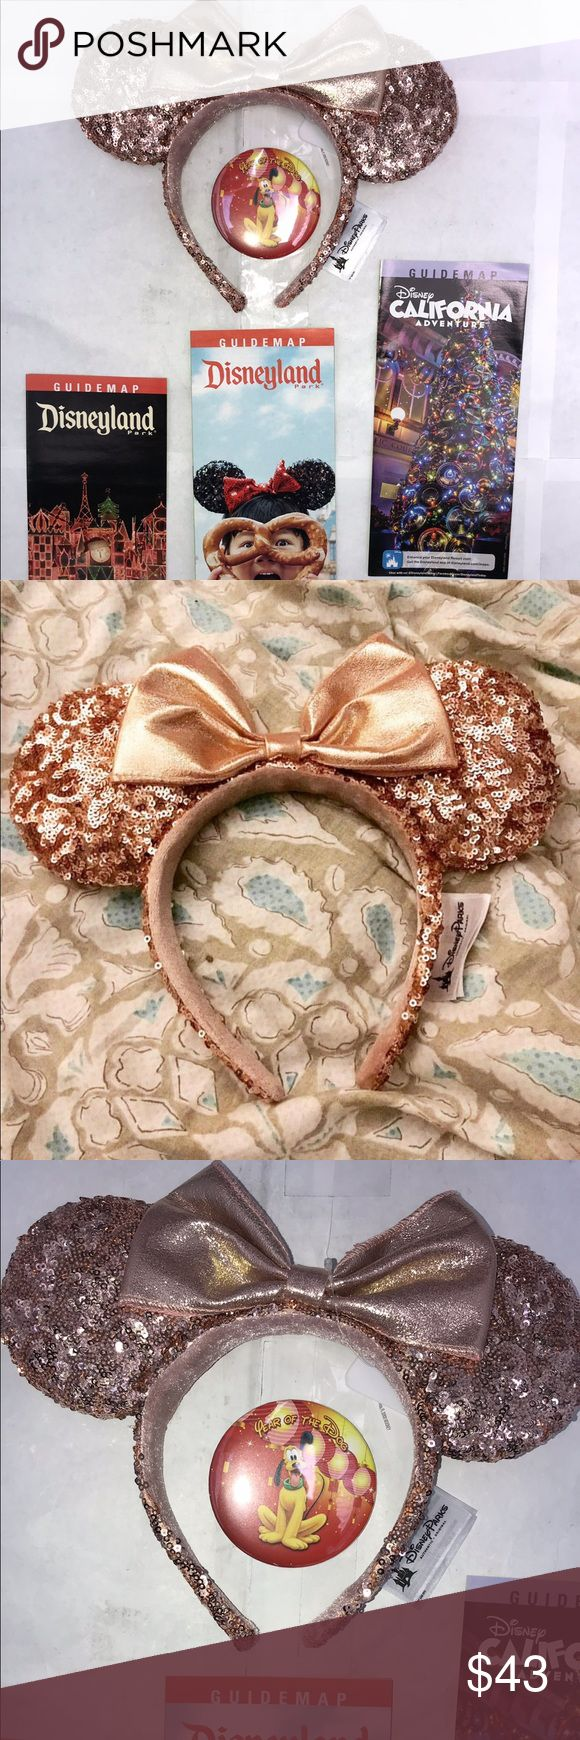 """DISNEYLAND EXCLUSIVE """"ROSE GOLD"""" MINNIE MOUSE EARS """"NOW AVAILABLE FOR A VERY LIMITED TIME""""   New DISNEYLAND """"ROSE GOLD"""" MINNIE MOUSE EARS   THESE DISNEYLAND """"ROSE GOLD"""" MINNIE MOUSE EARS HAVE BEEN SELLING LIKE CRAZY !! .... DISNEYLAND CAN'T KEEP ENOUGH OF THESE IN STOCK TO MEET THE VERY HIGH DEMAND ... MANY SELLERS ARE SELLING THESE """"ROSE GOLD"""" MINNIE EARS AT """"VERY HIGH PRICES"""" ON ( EBAY - AMAZON - INSTAGRAM ) STARTING AT : ( $49.95 - $55.00 - $60.00 And HIGHER ) MY PRICES REMAIN AFFORDABLE…"""